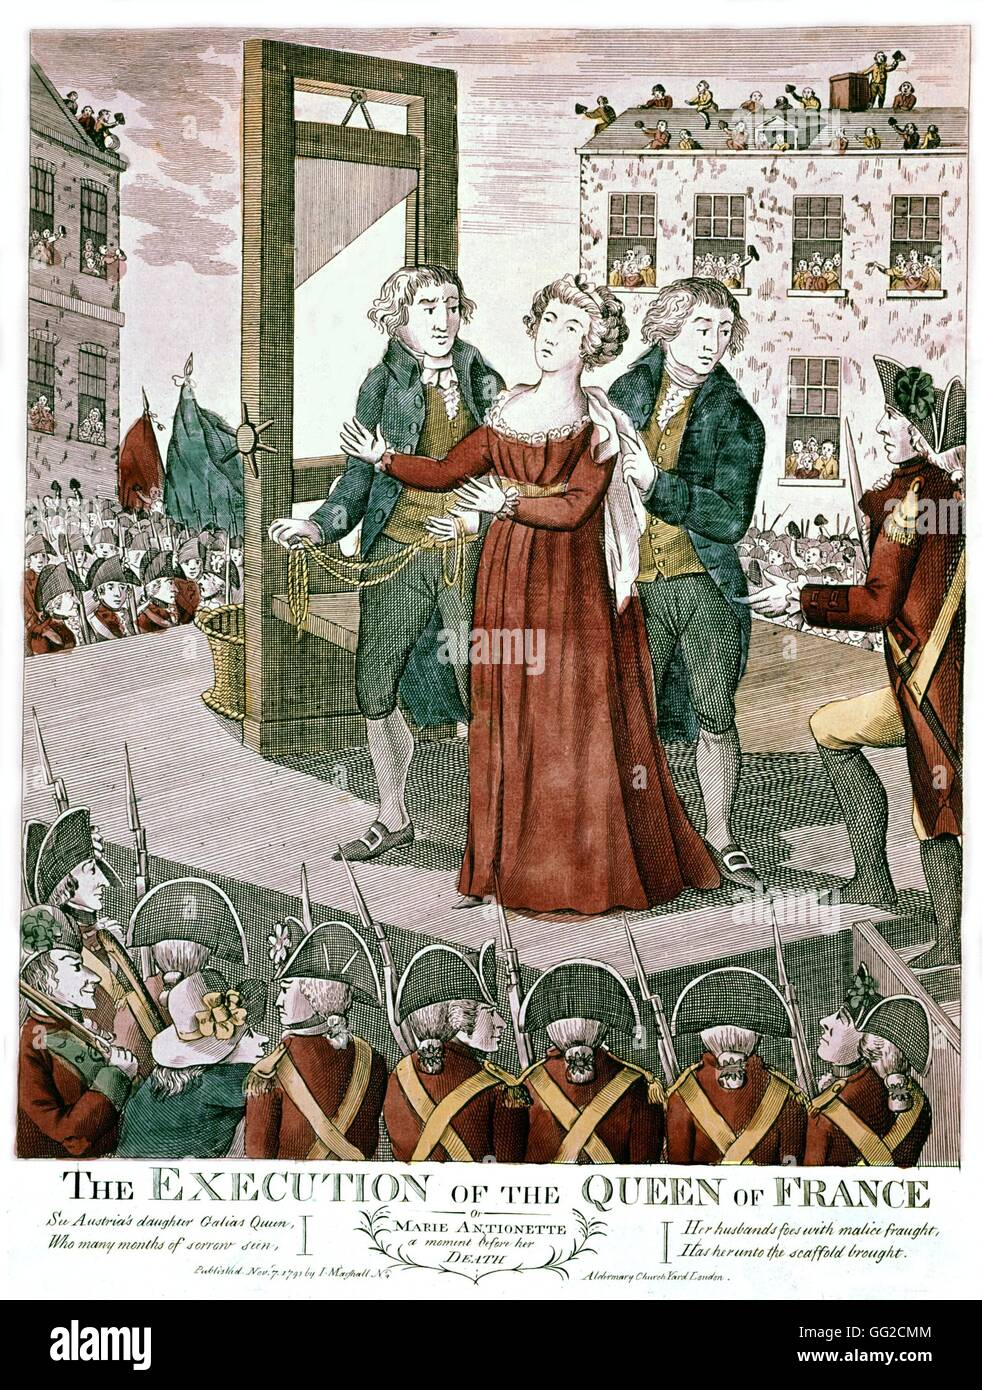 Execution of Marie-Antoinette, Queen of France October 16, 1793 1793  English engraving France, French Revolution of 1789